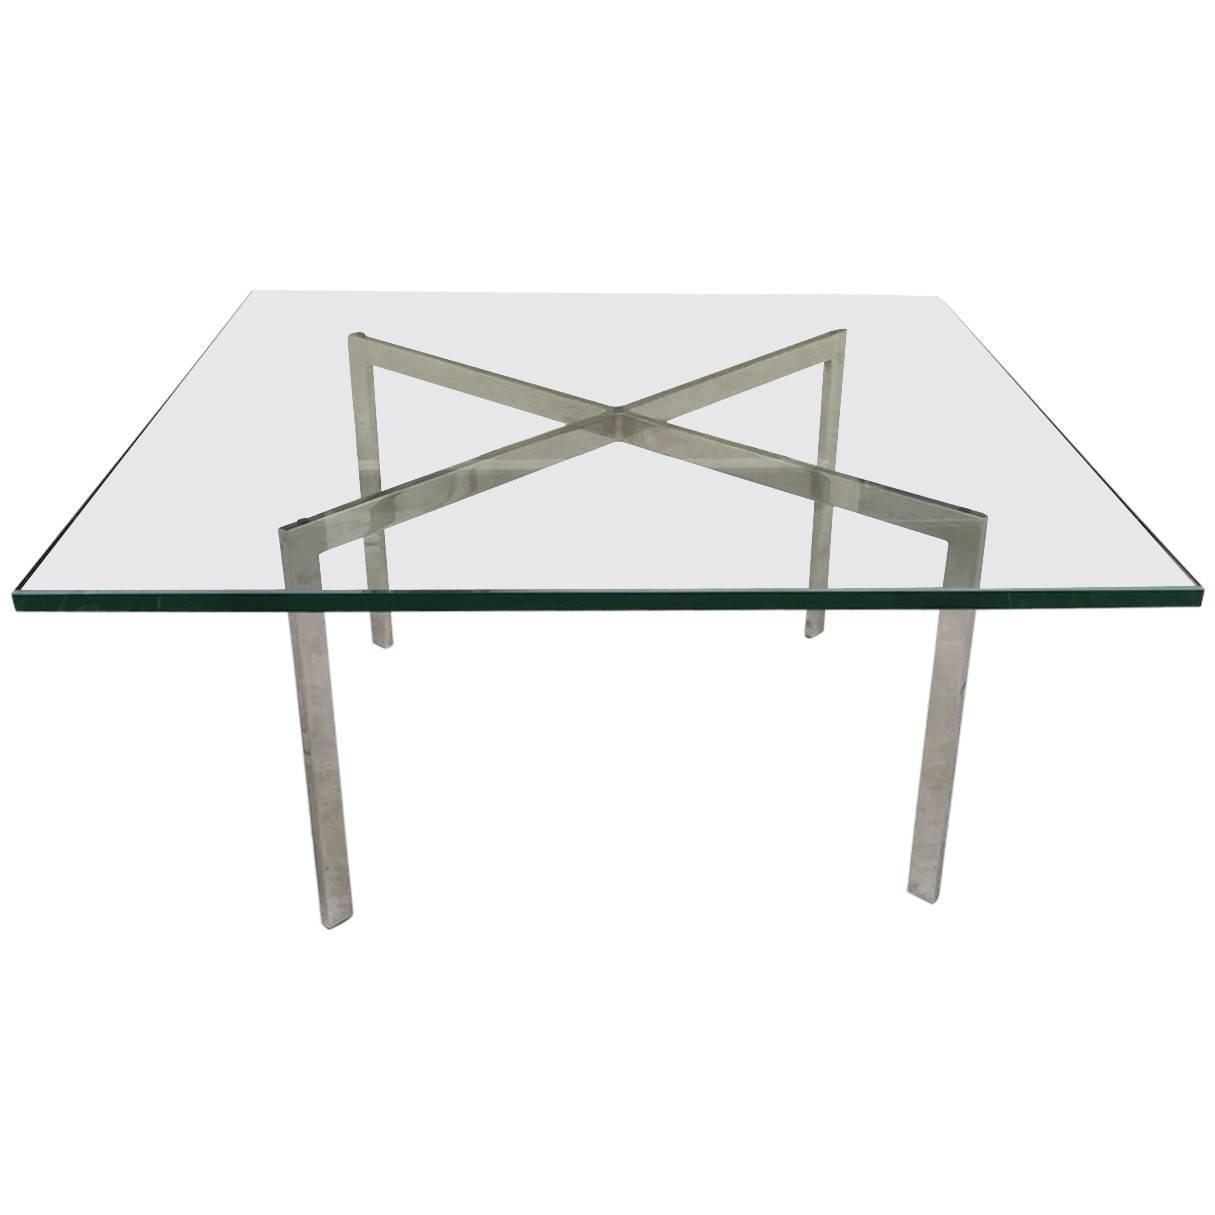 Barcelona table by mies van der rohe for knoll for sale at 1stdibs - Knoll barcelona table ...